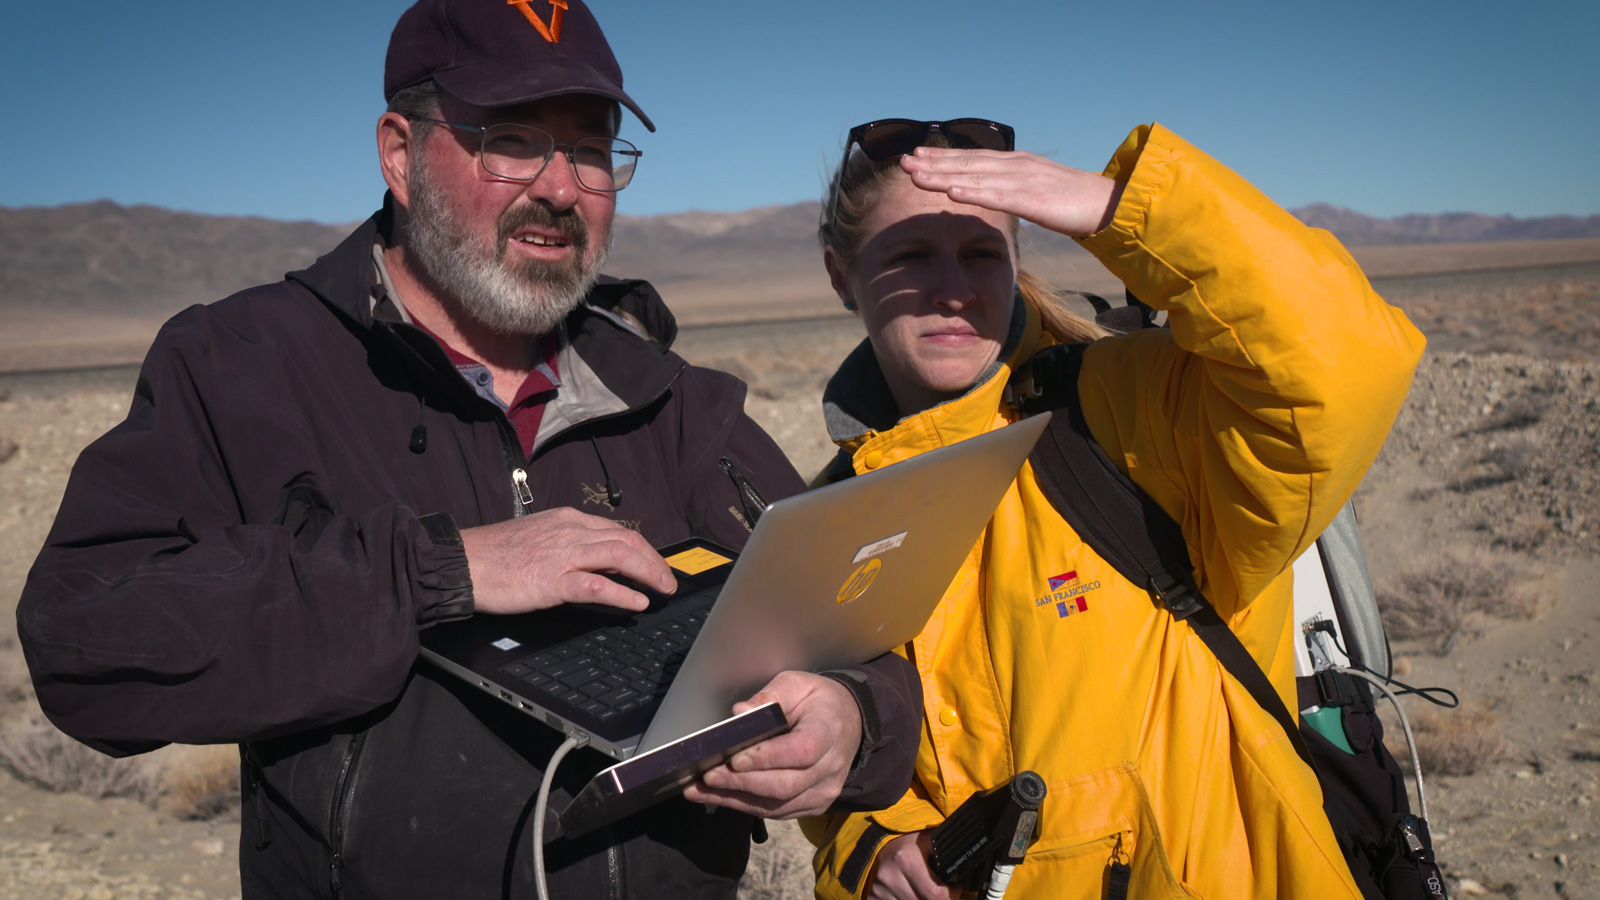 Two JPL scientists in a dry lakebed in the Nevada desert